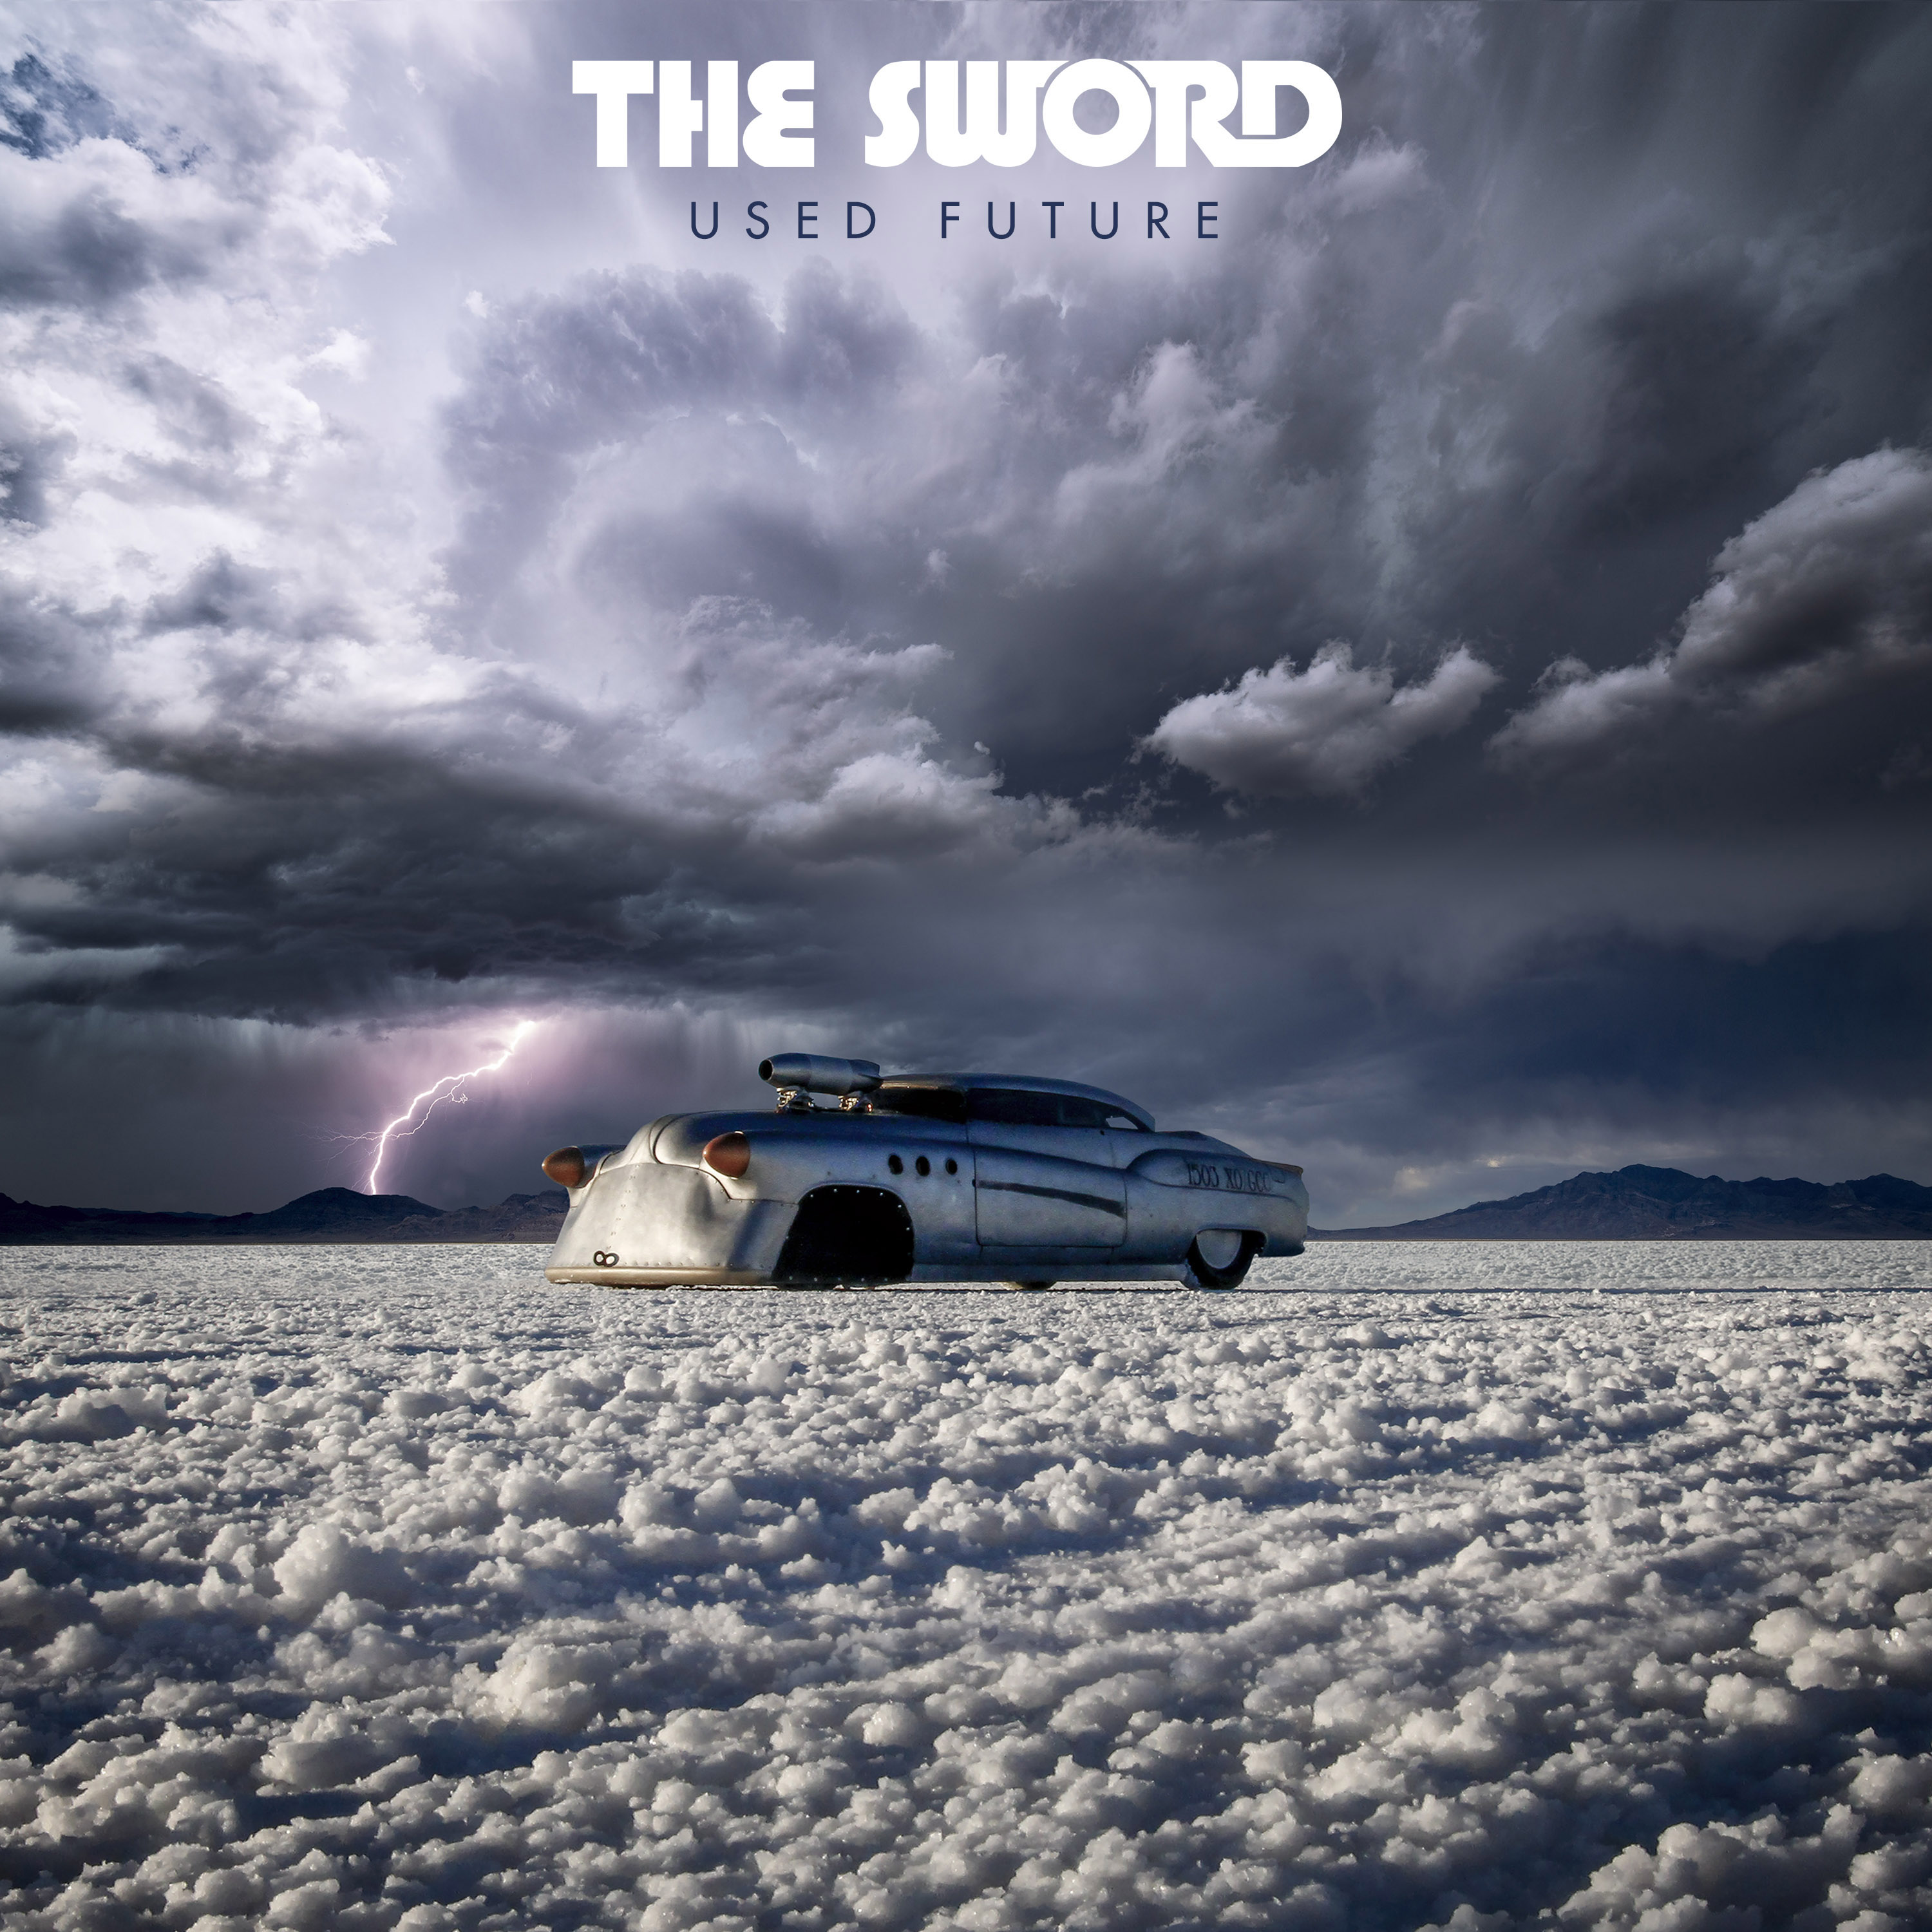 used ftr final The Sword return with new album Used Future: Stream